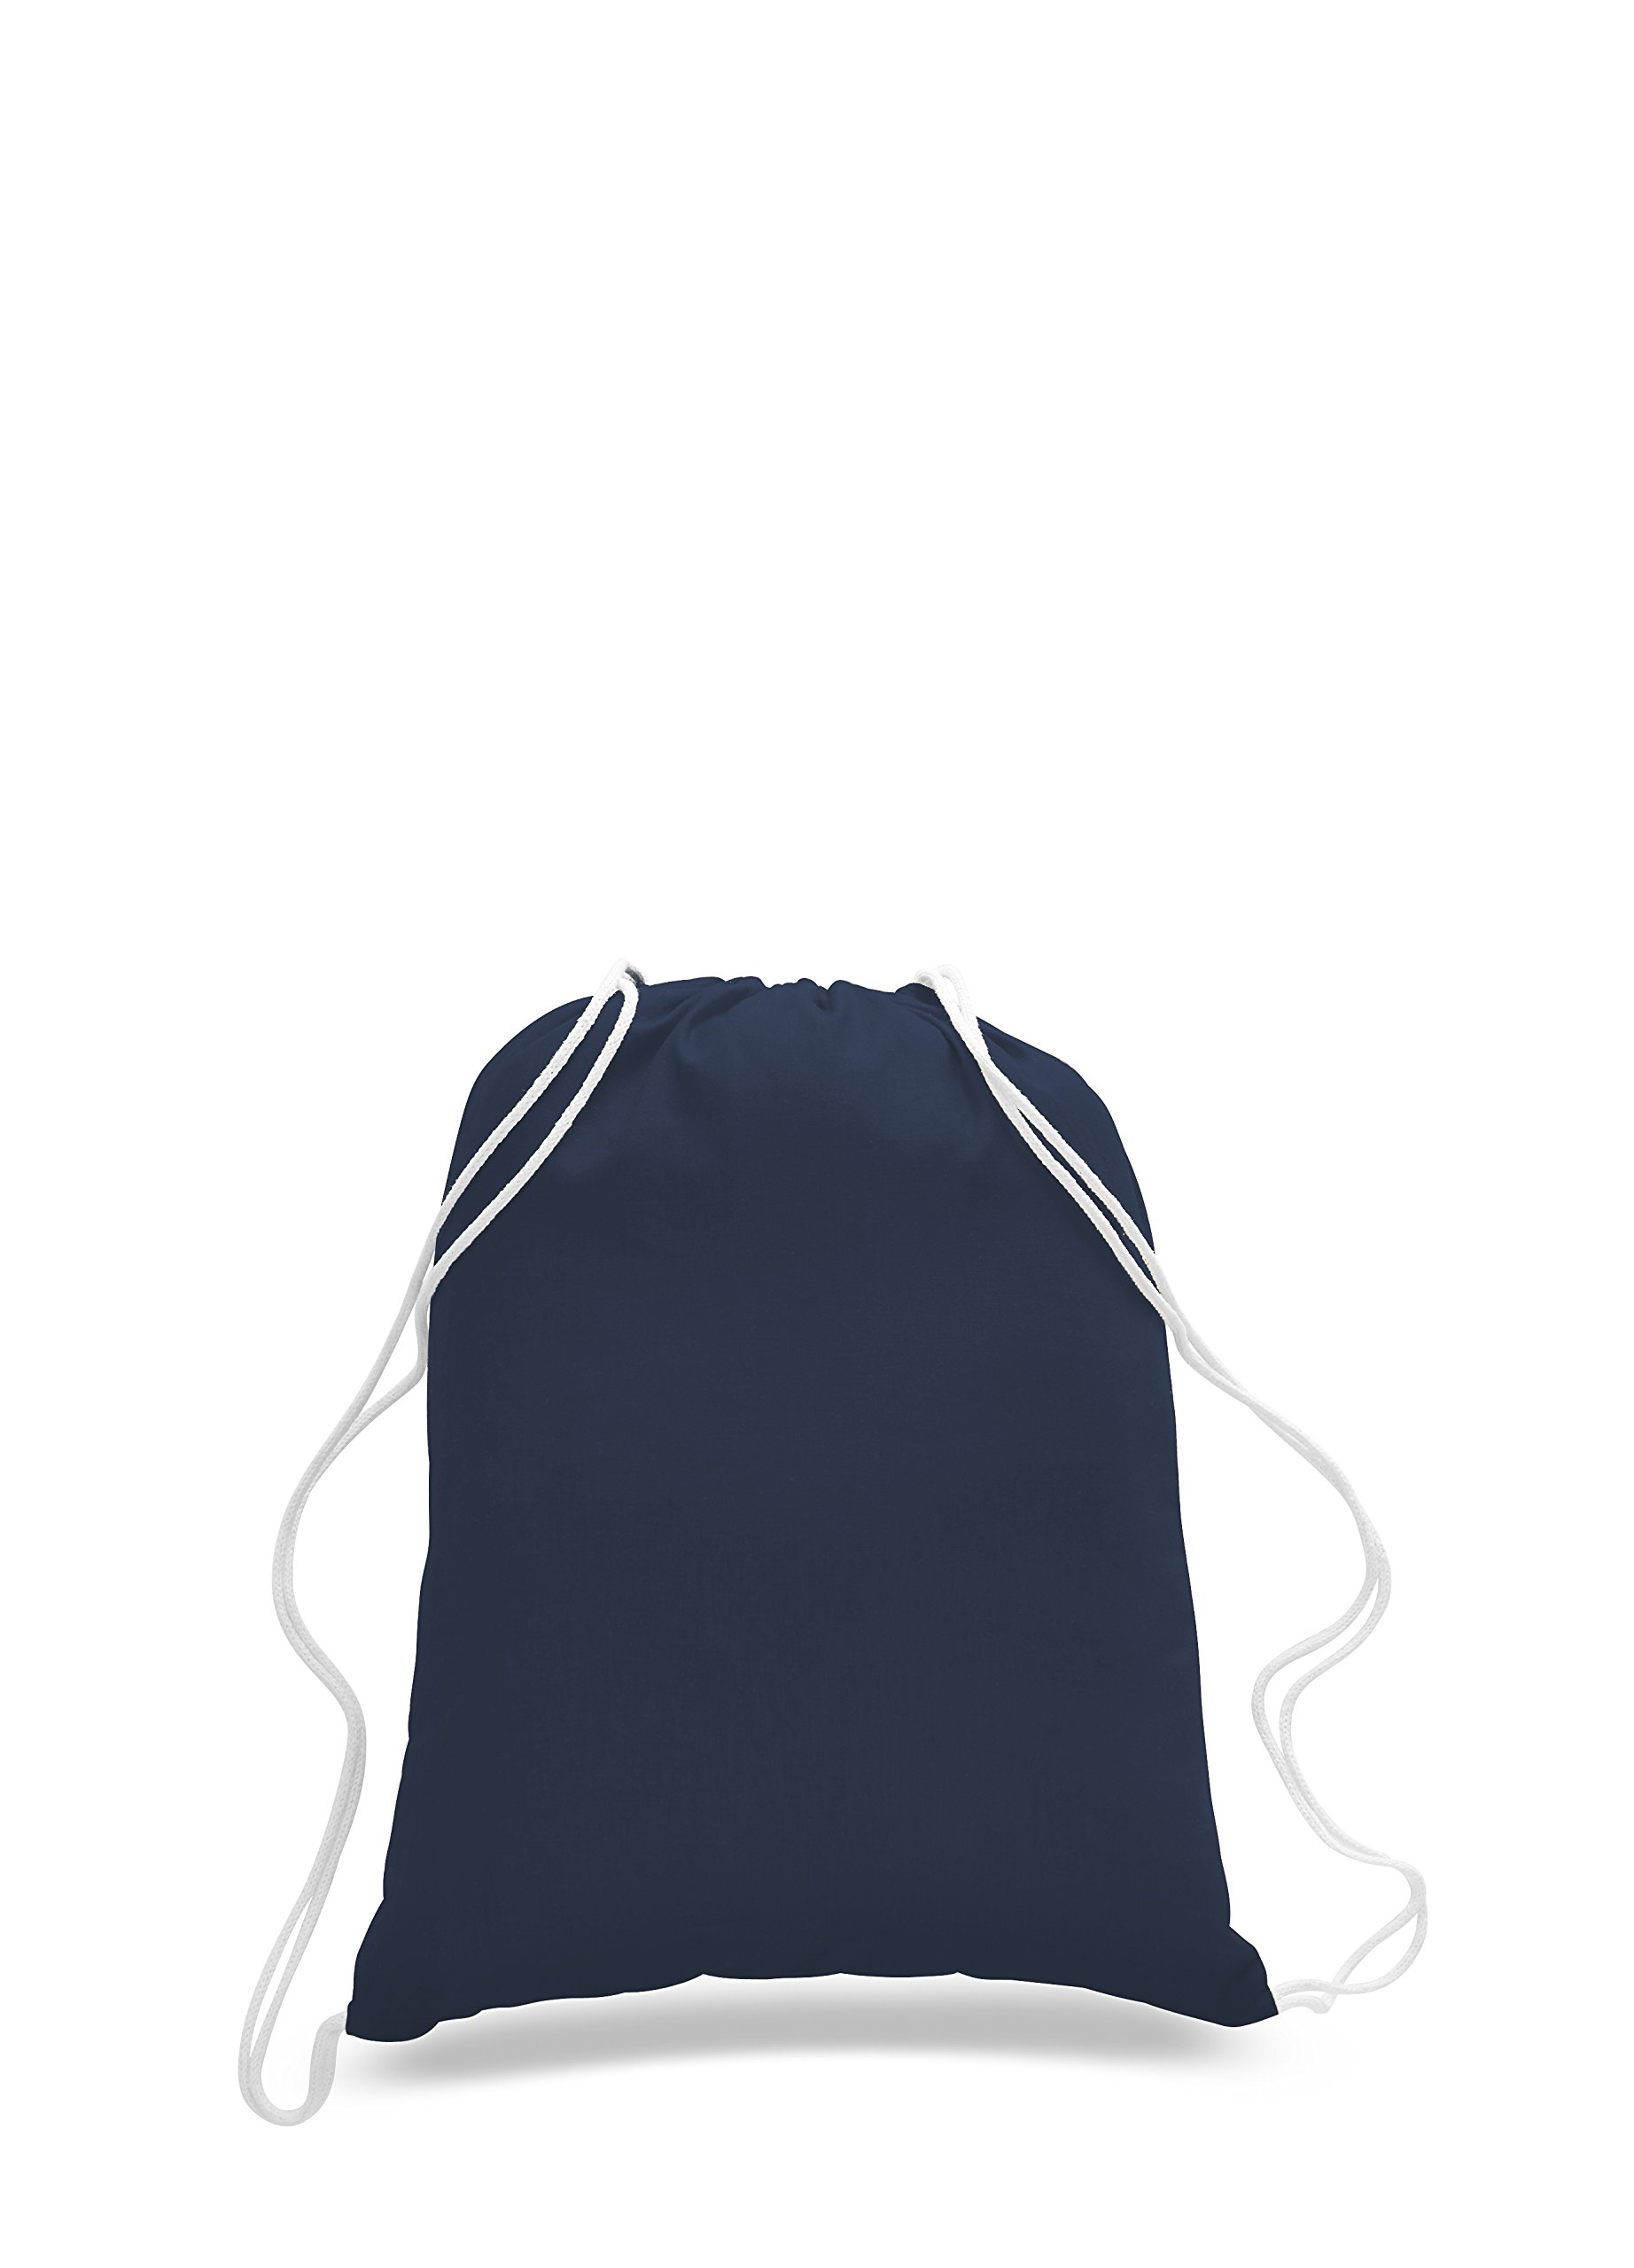 Pack of 2 - Eco-Friendly Reusable Drawstring Bag Economical 6 oz. Cotton Canvas Drawstring Bag Cinch bags size 14''W x 18''H in Navy Blue color - CarryGreen Bag